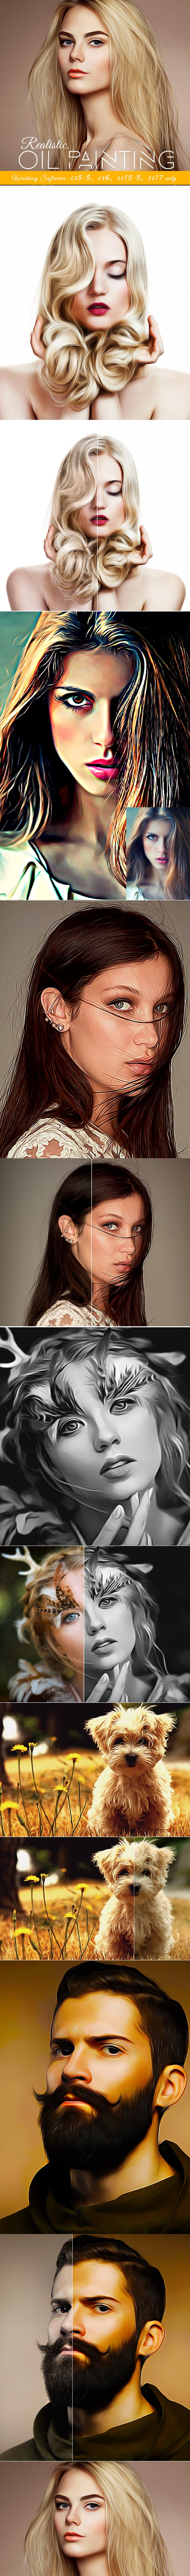 Realistic Oil Painting - Photo Effects Actions